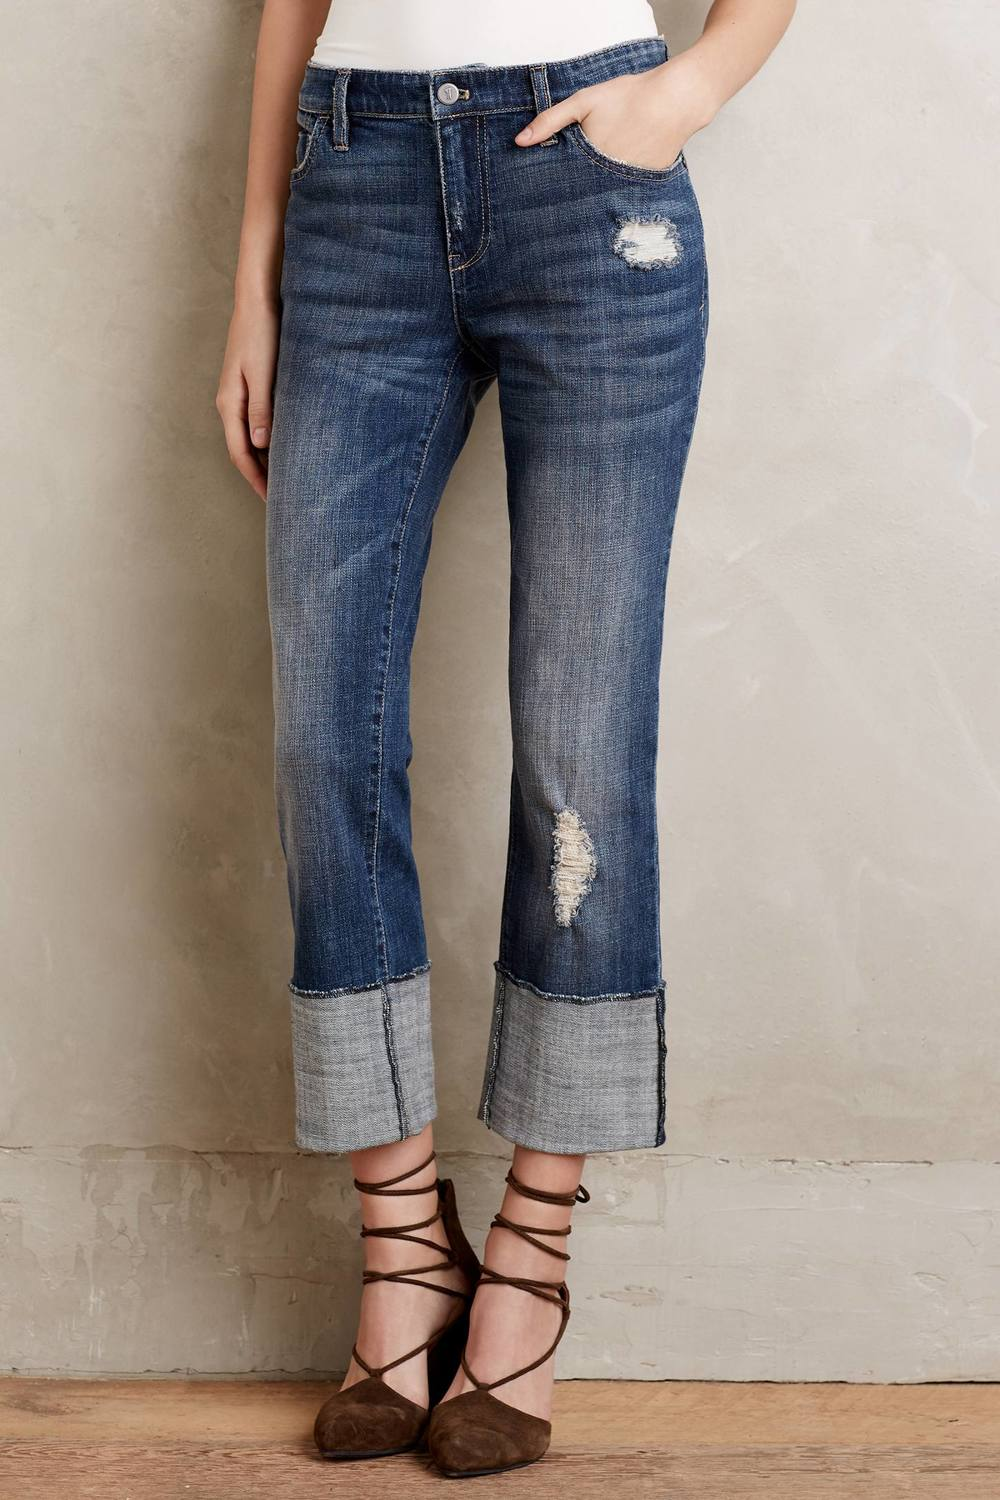 Petite Pilcro Hyphen High Cuff Jeans. Available in two washes. Anthropologie. $158.